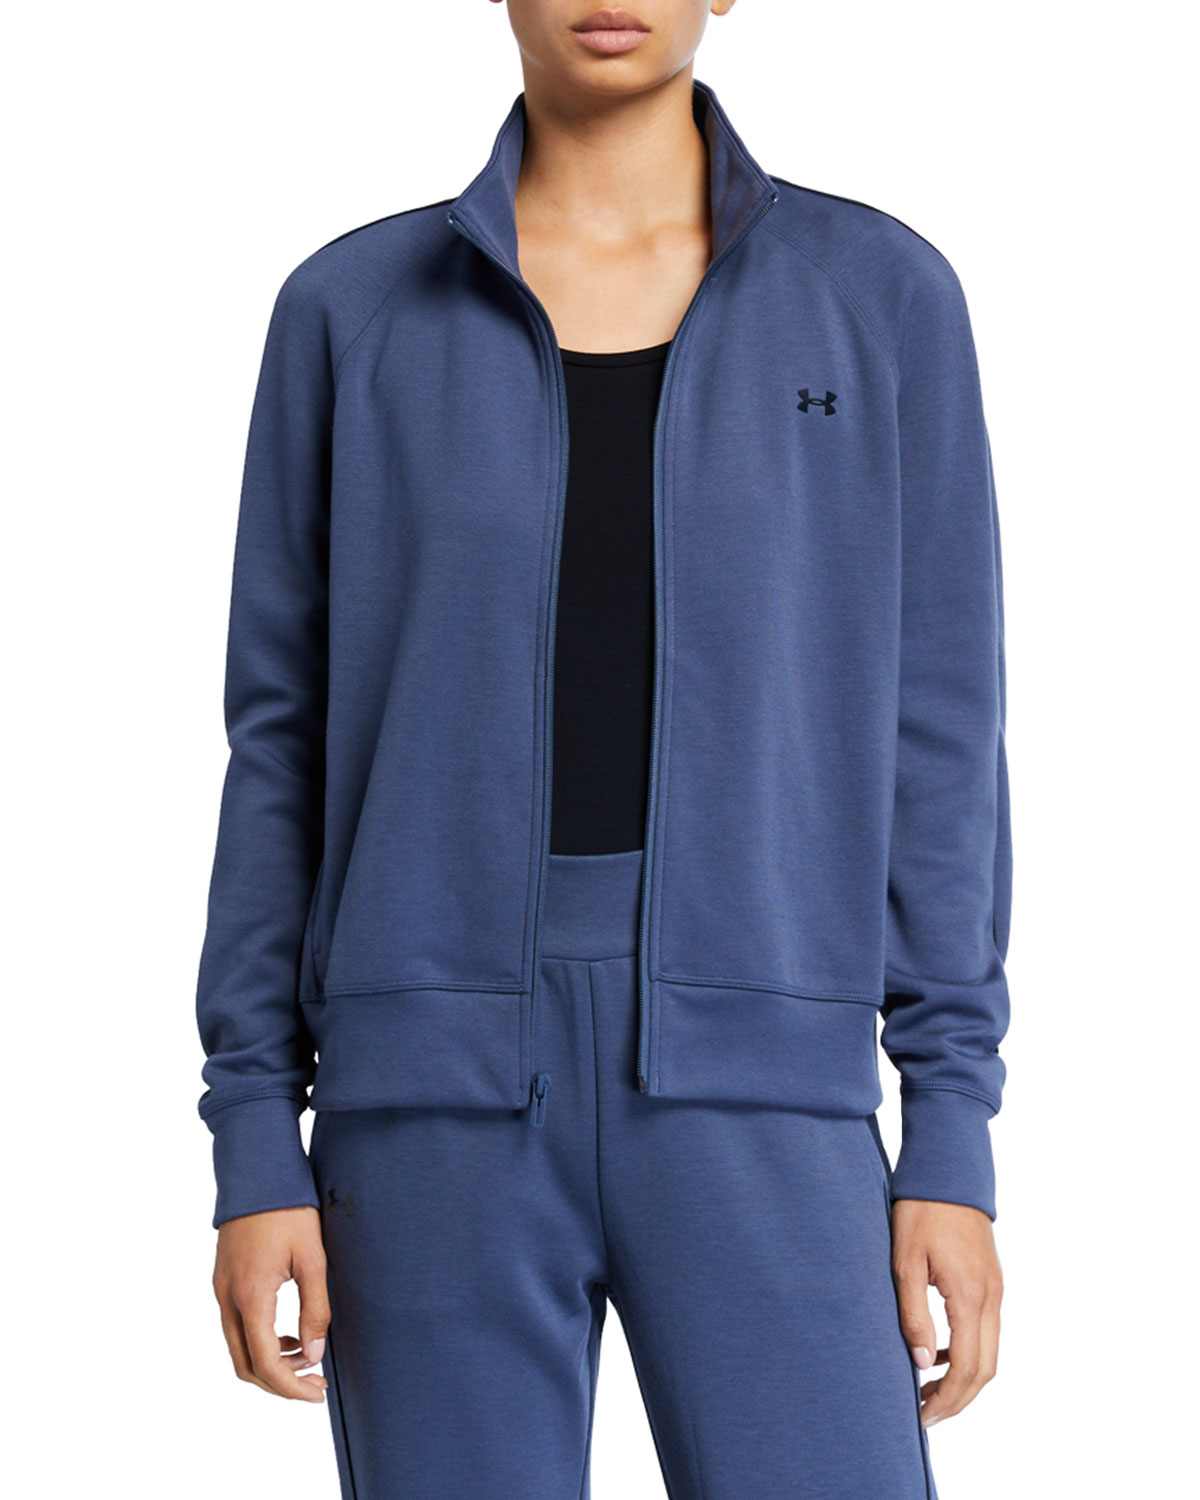 Under Armour Jackets DOUBLE KNIT ZIP-FRONT TRACK JACKET